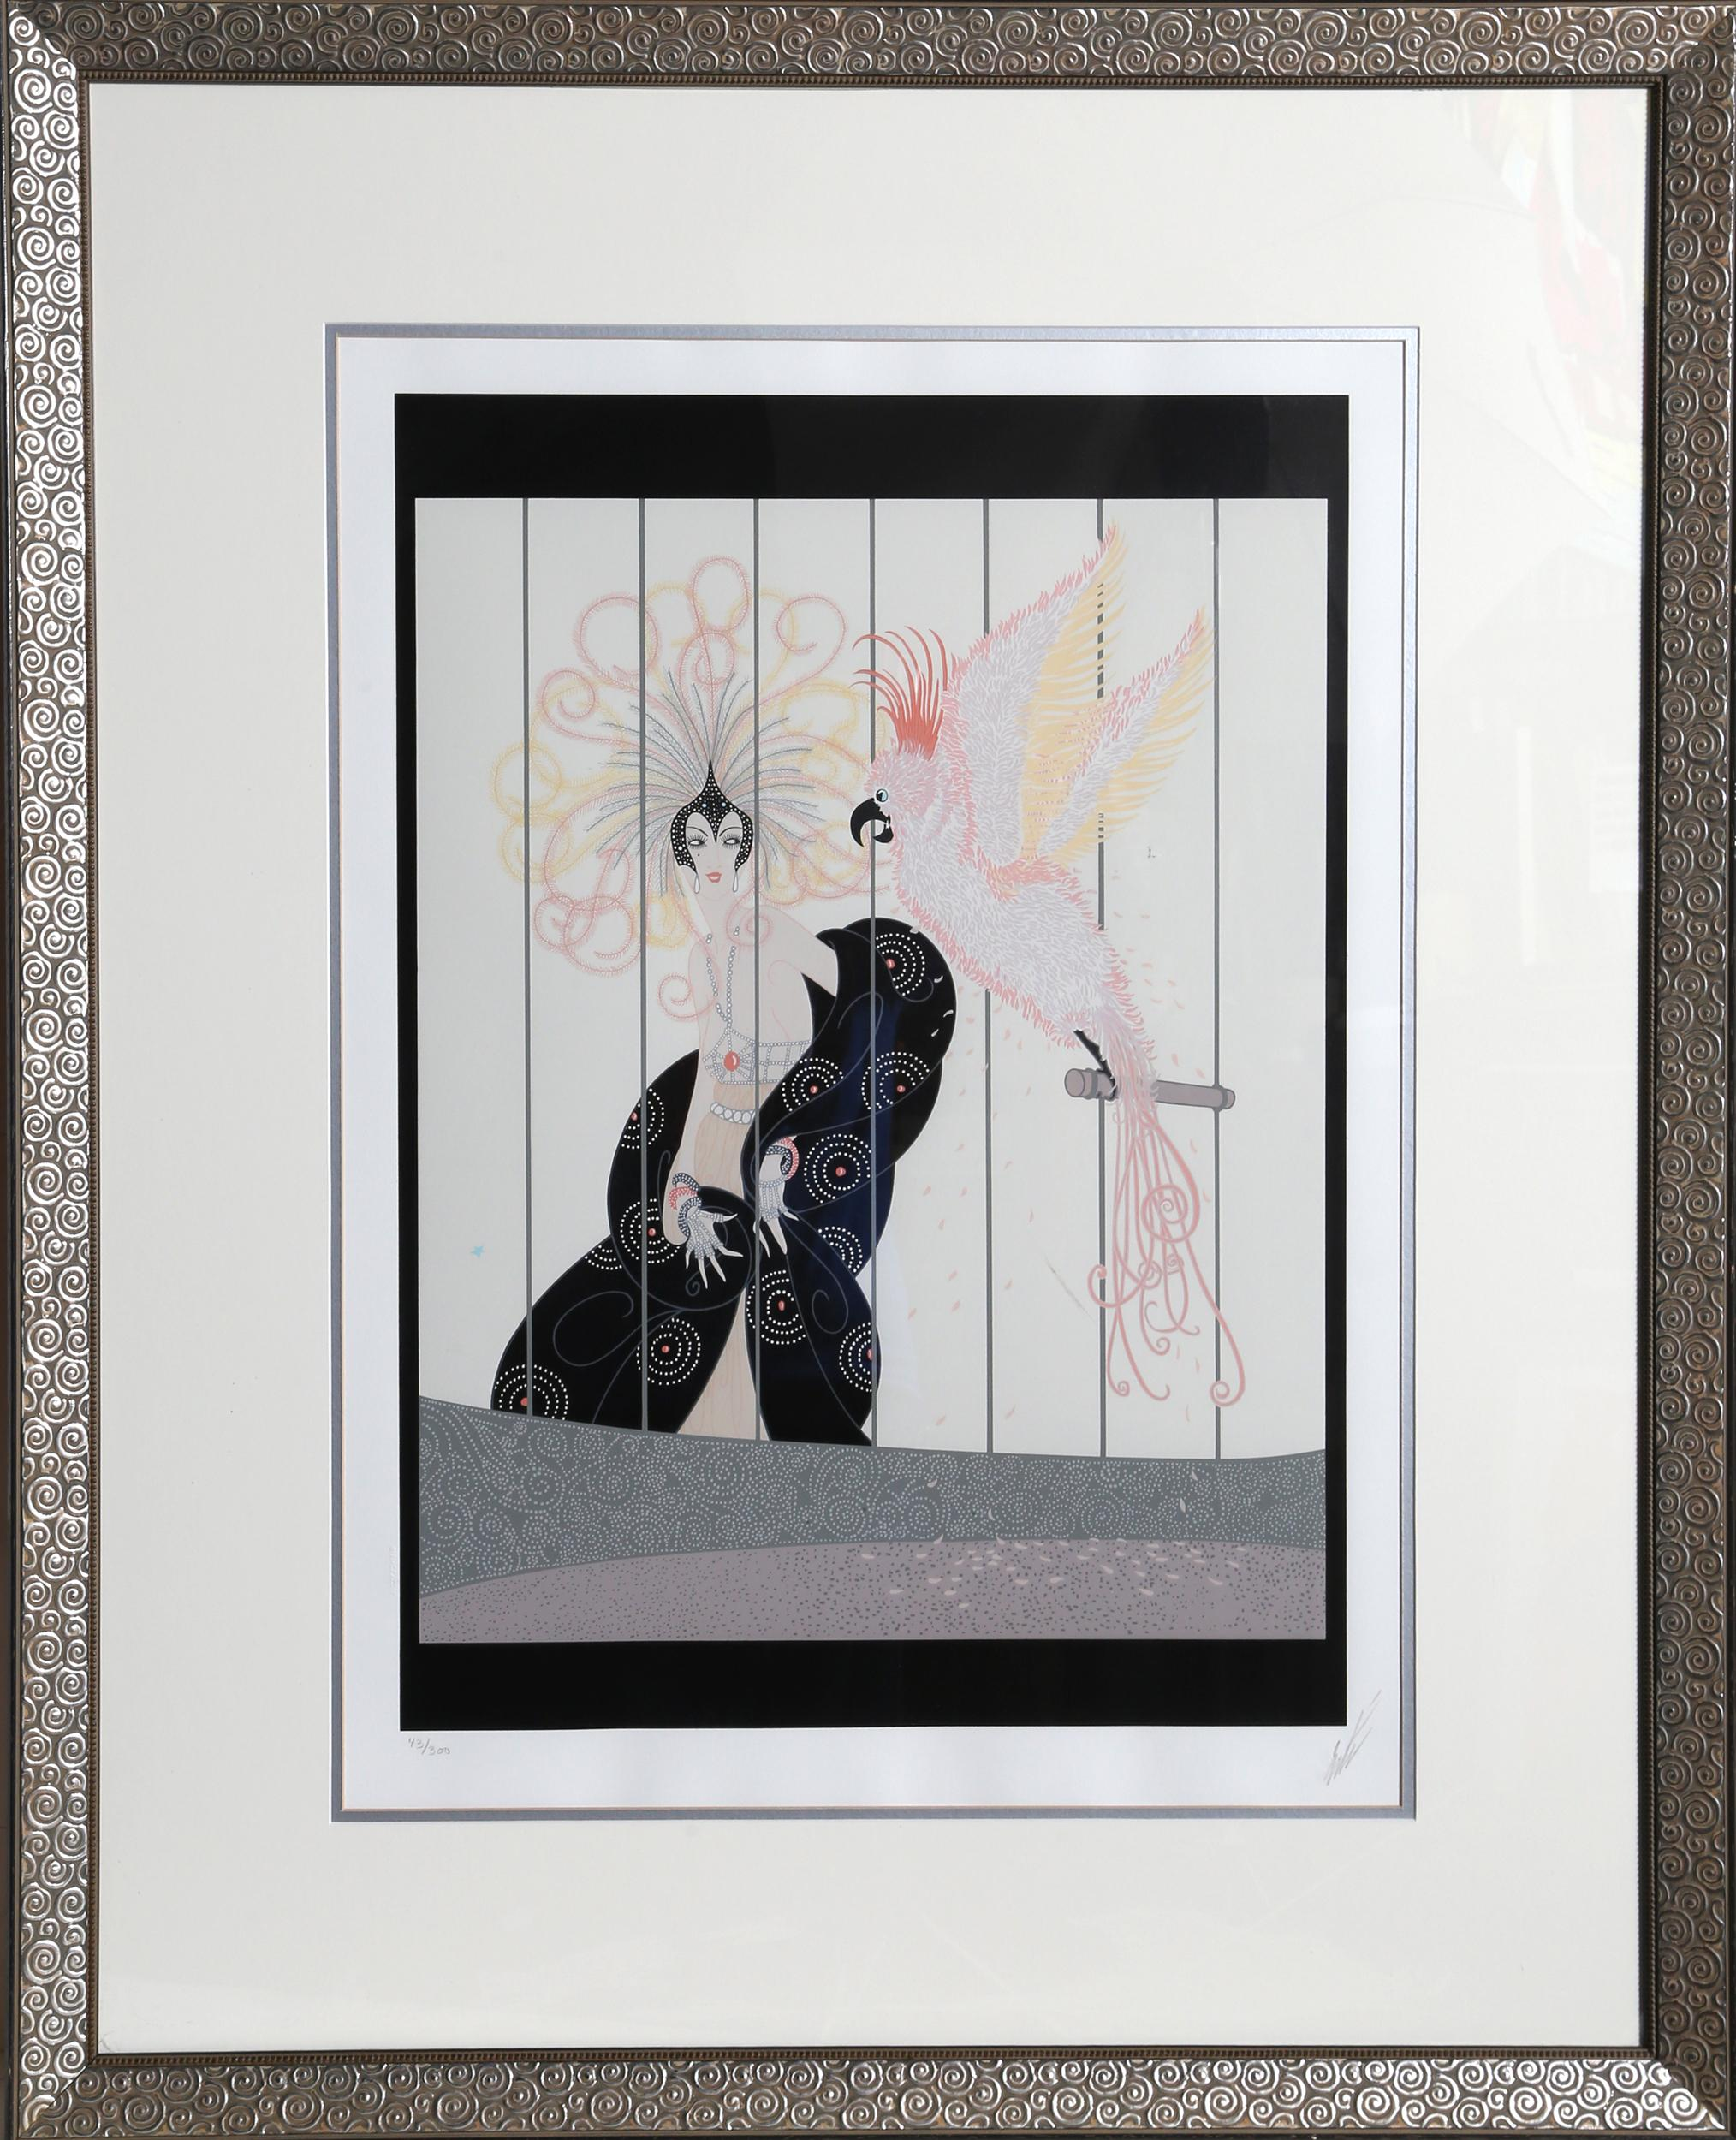 Erte, The Bird Cage, Serigraph